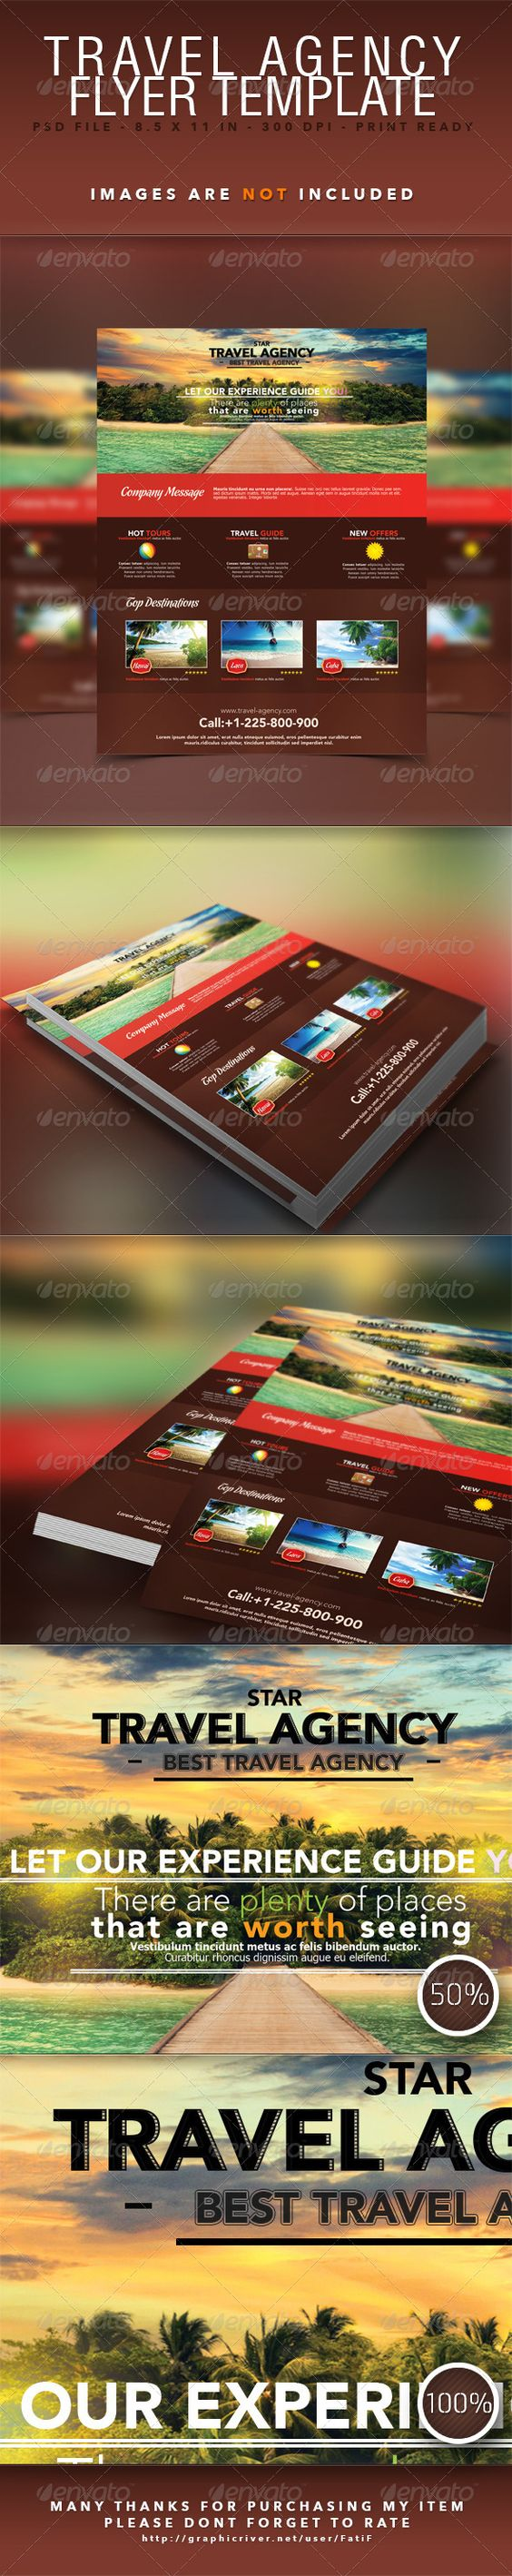 Travel Agency Flyer Template - Corporate Flyers